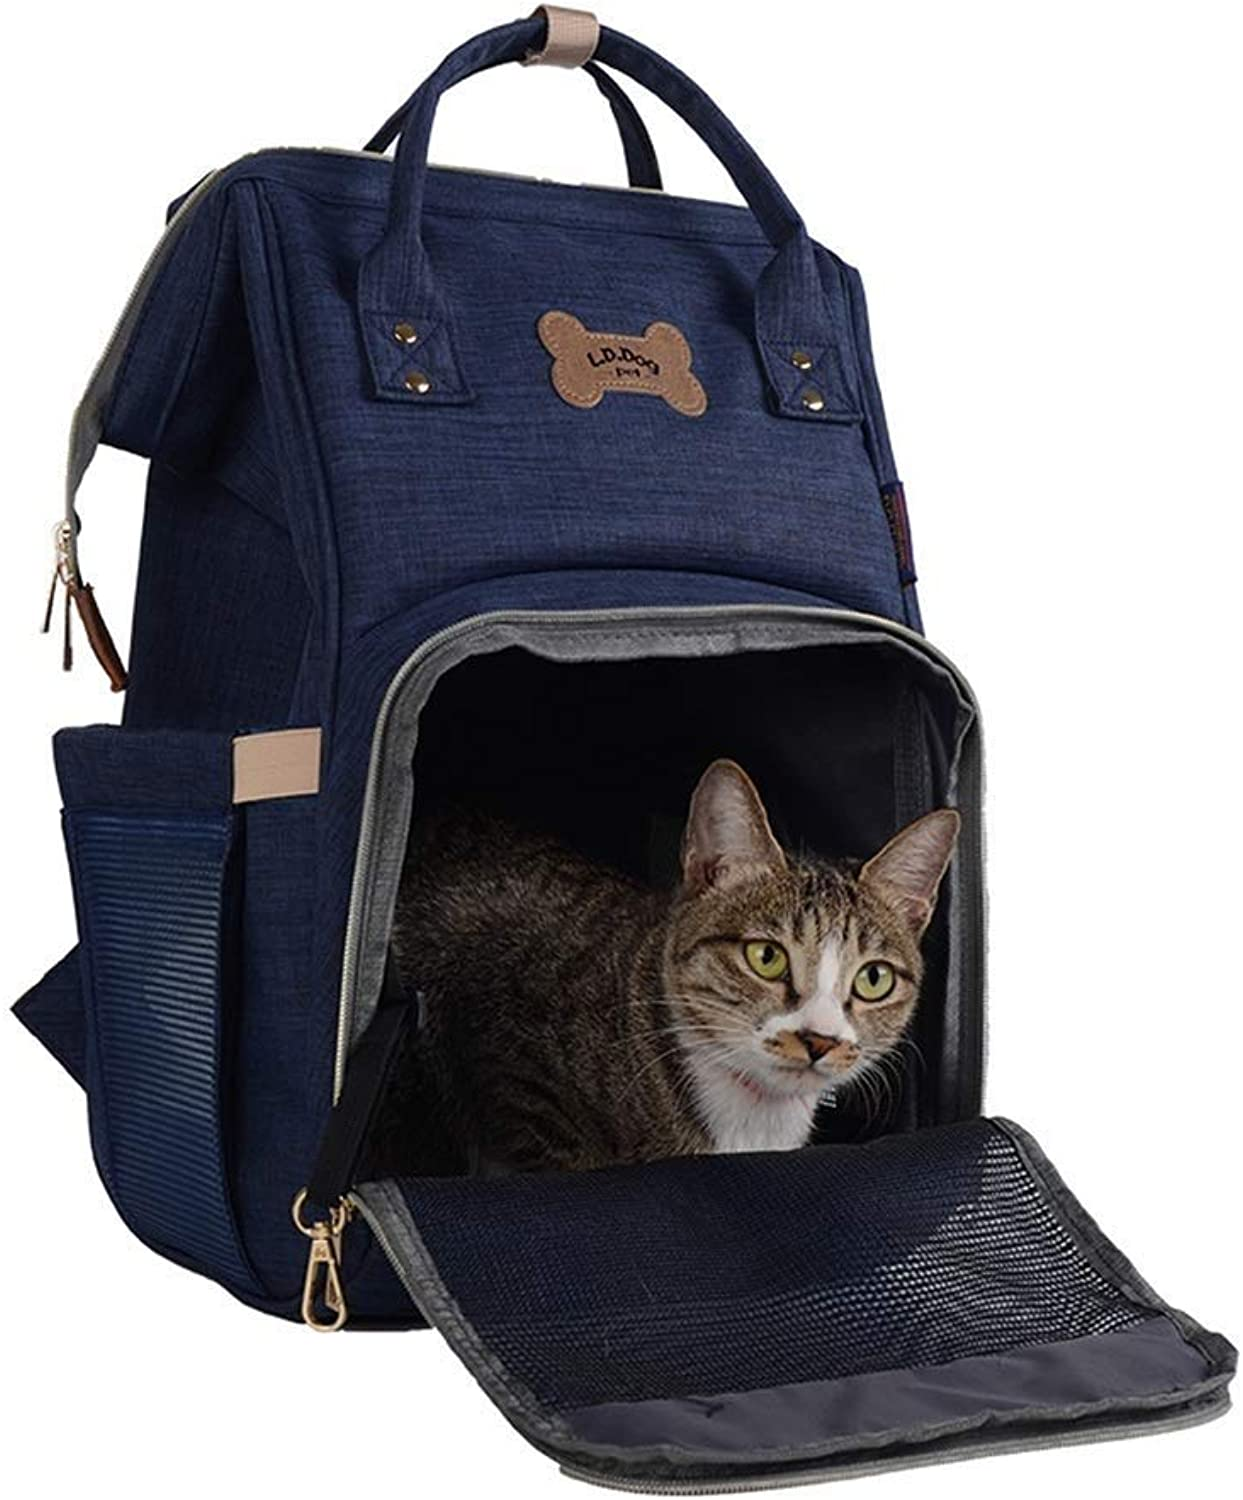 LEMONCOFFEE Cat And Dog Going Out Pet Out Bag For Small Pets Double Shoulder Portable